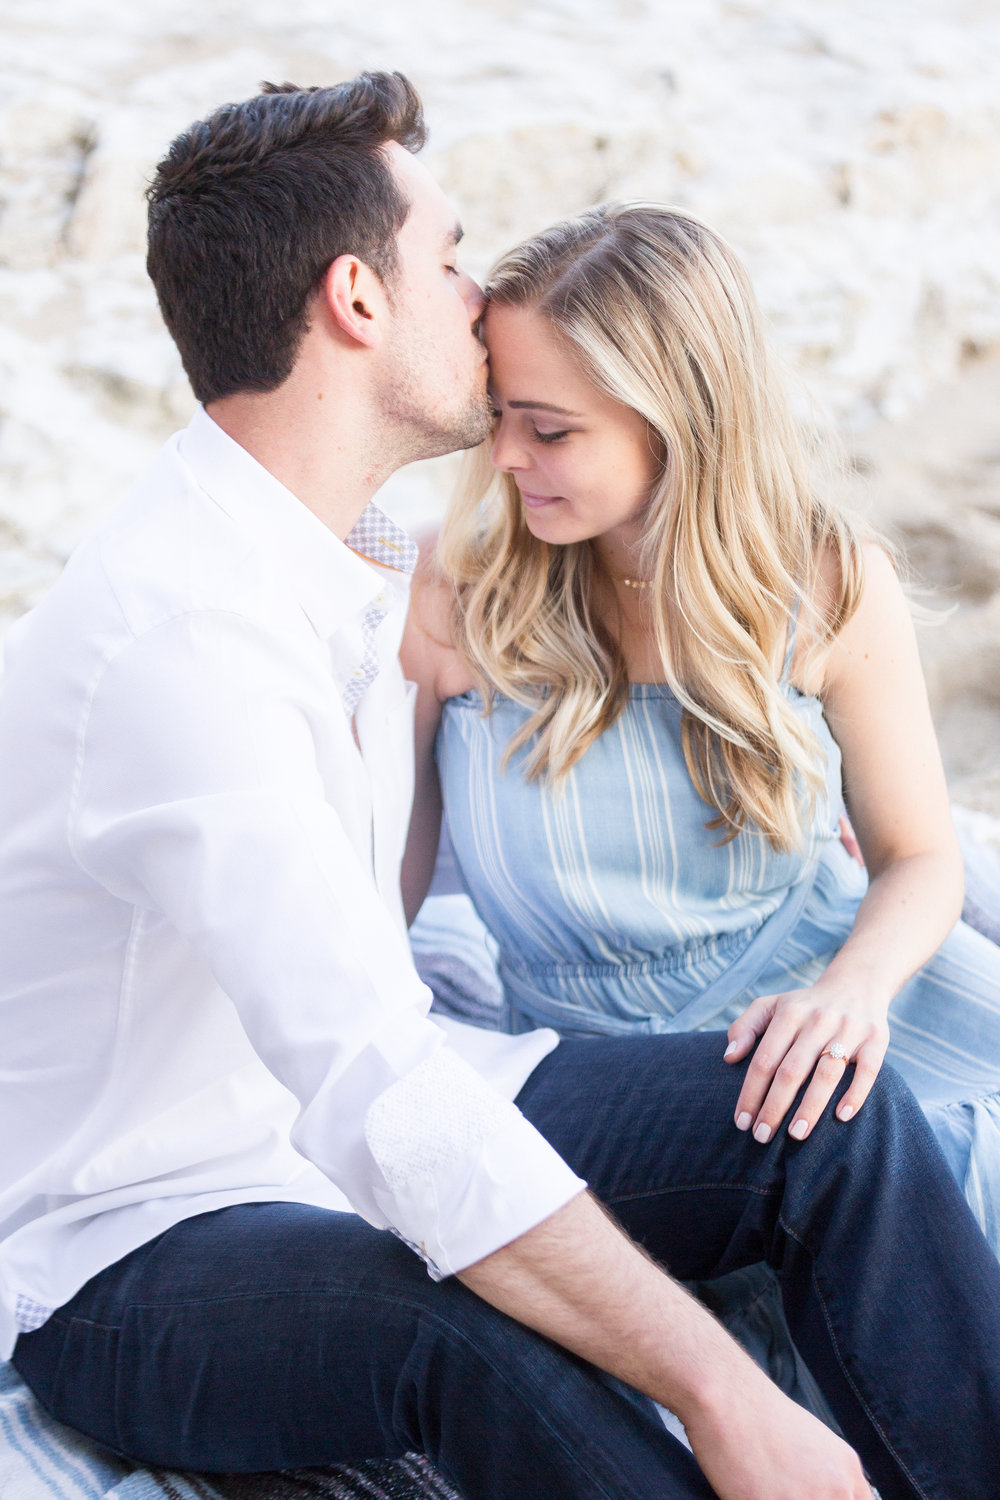 panther-beach-santa-cruz-engagement-session-photographer-51.jpg